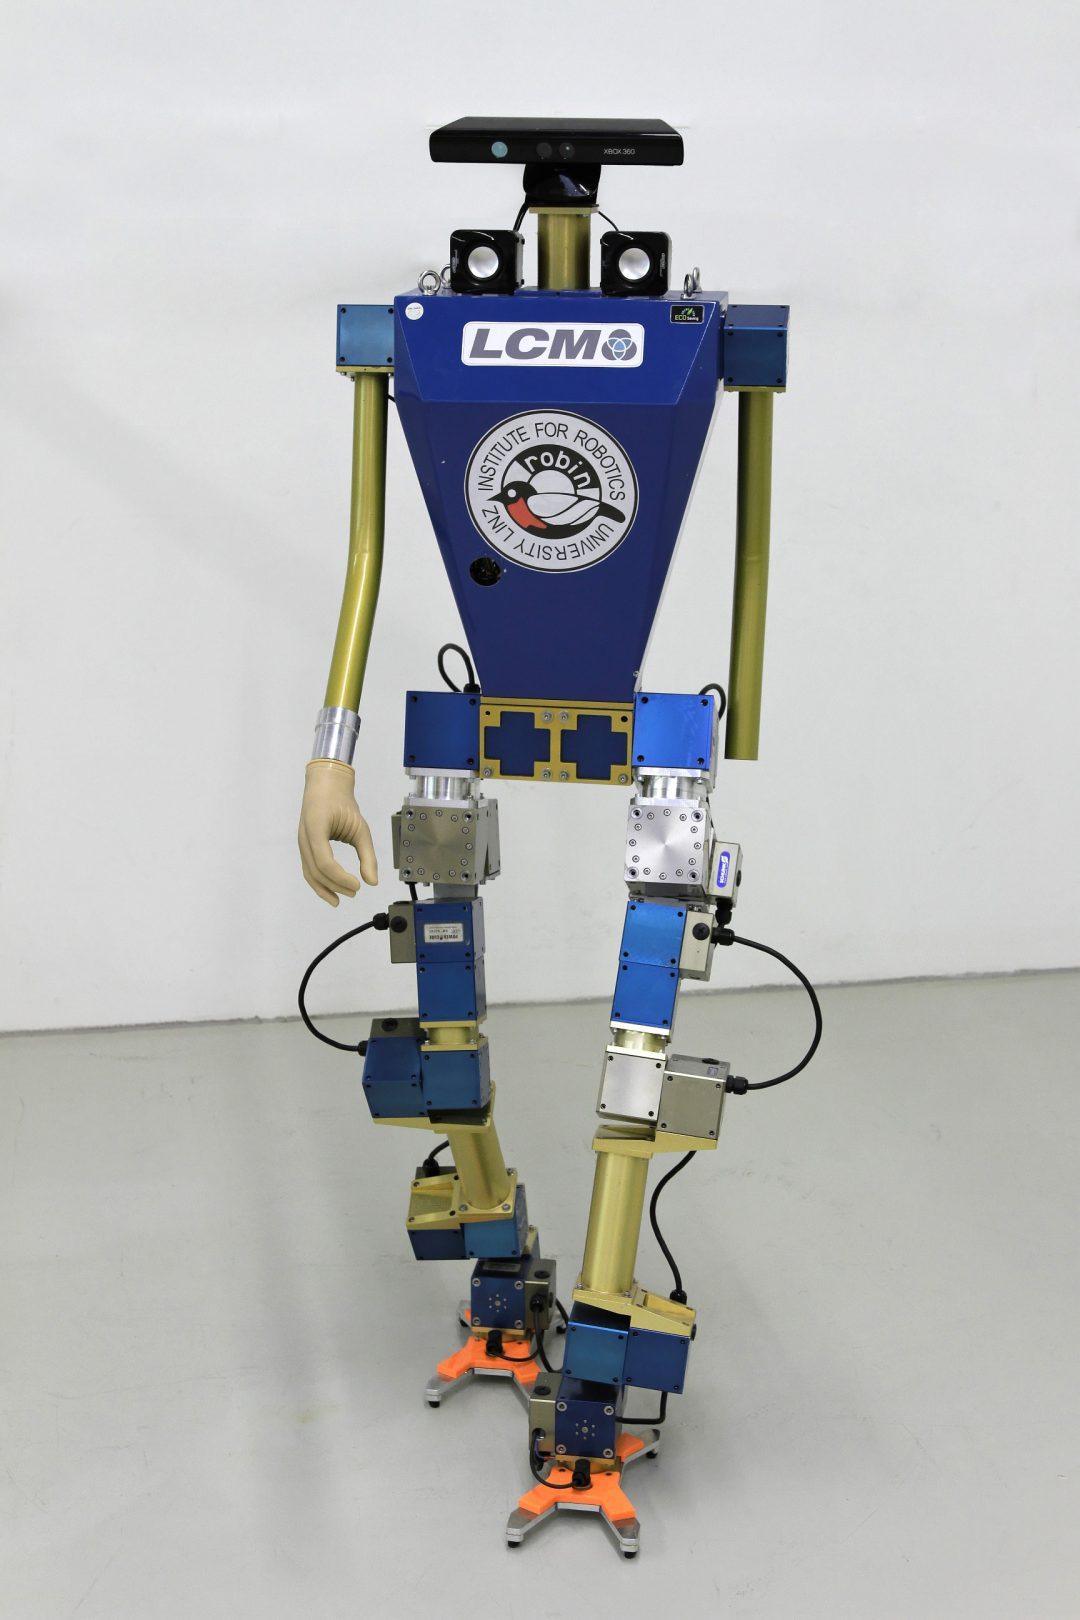 Let the robot do the work!